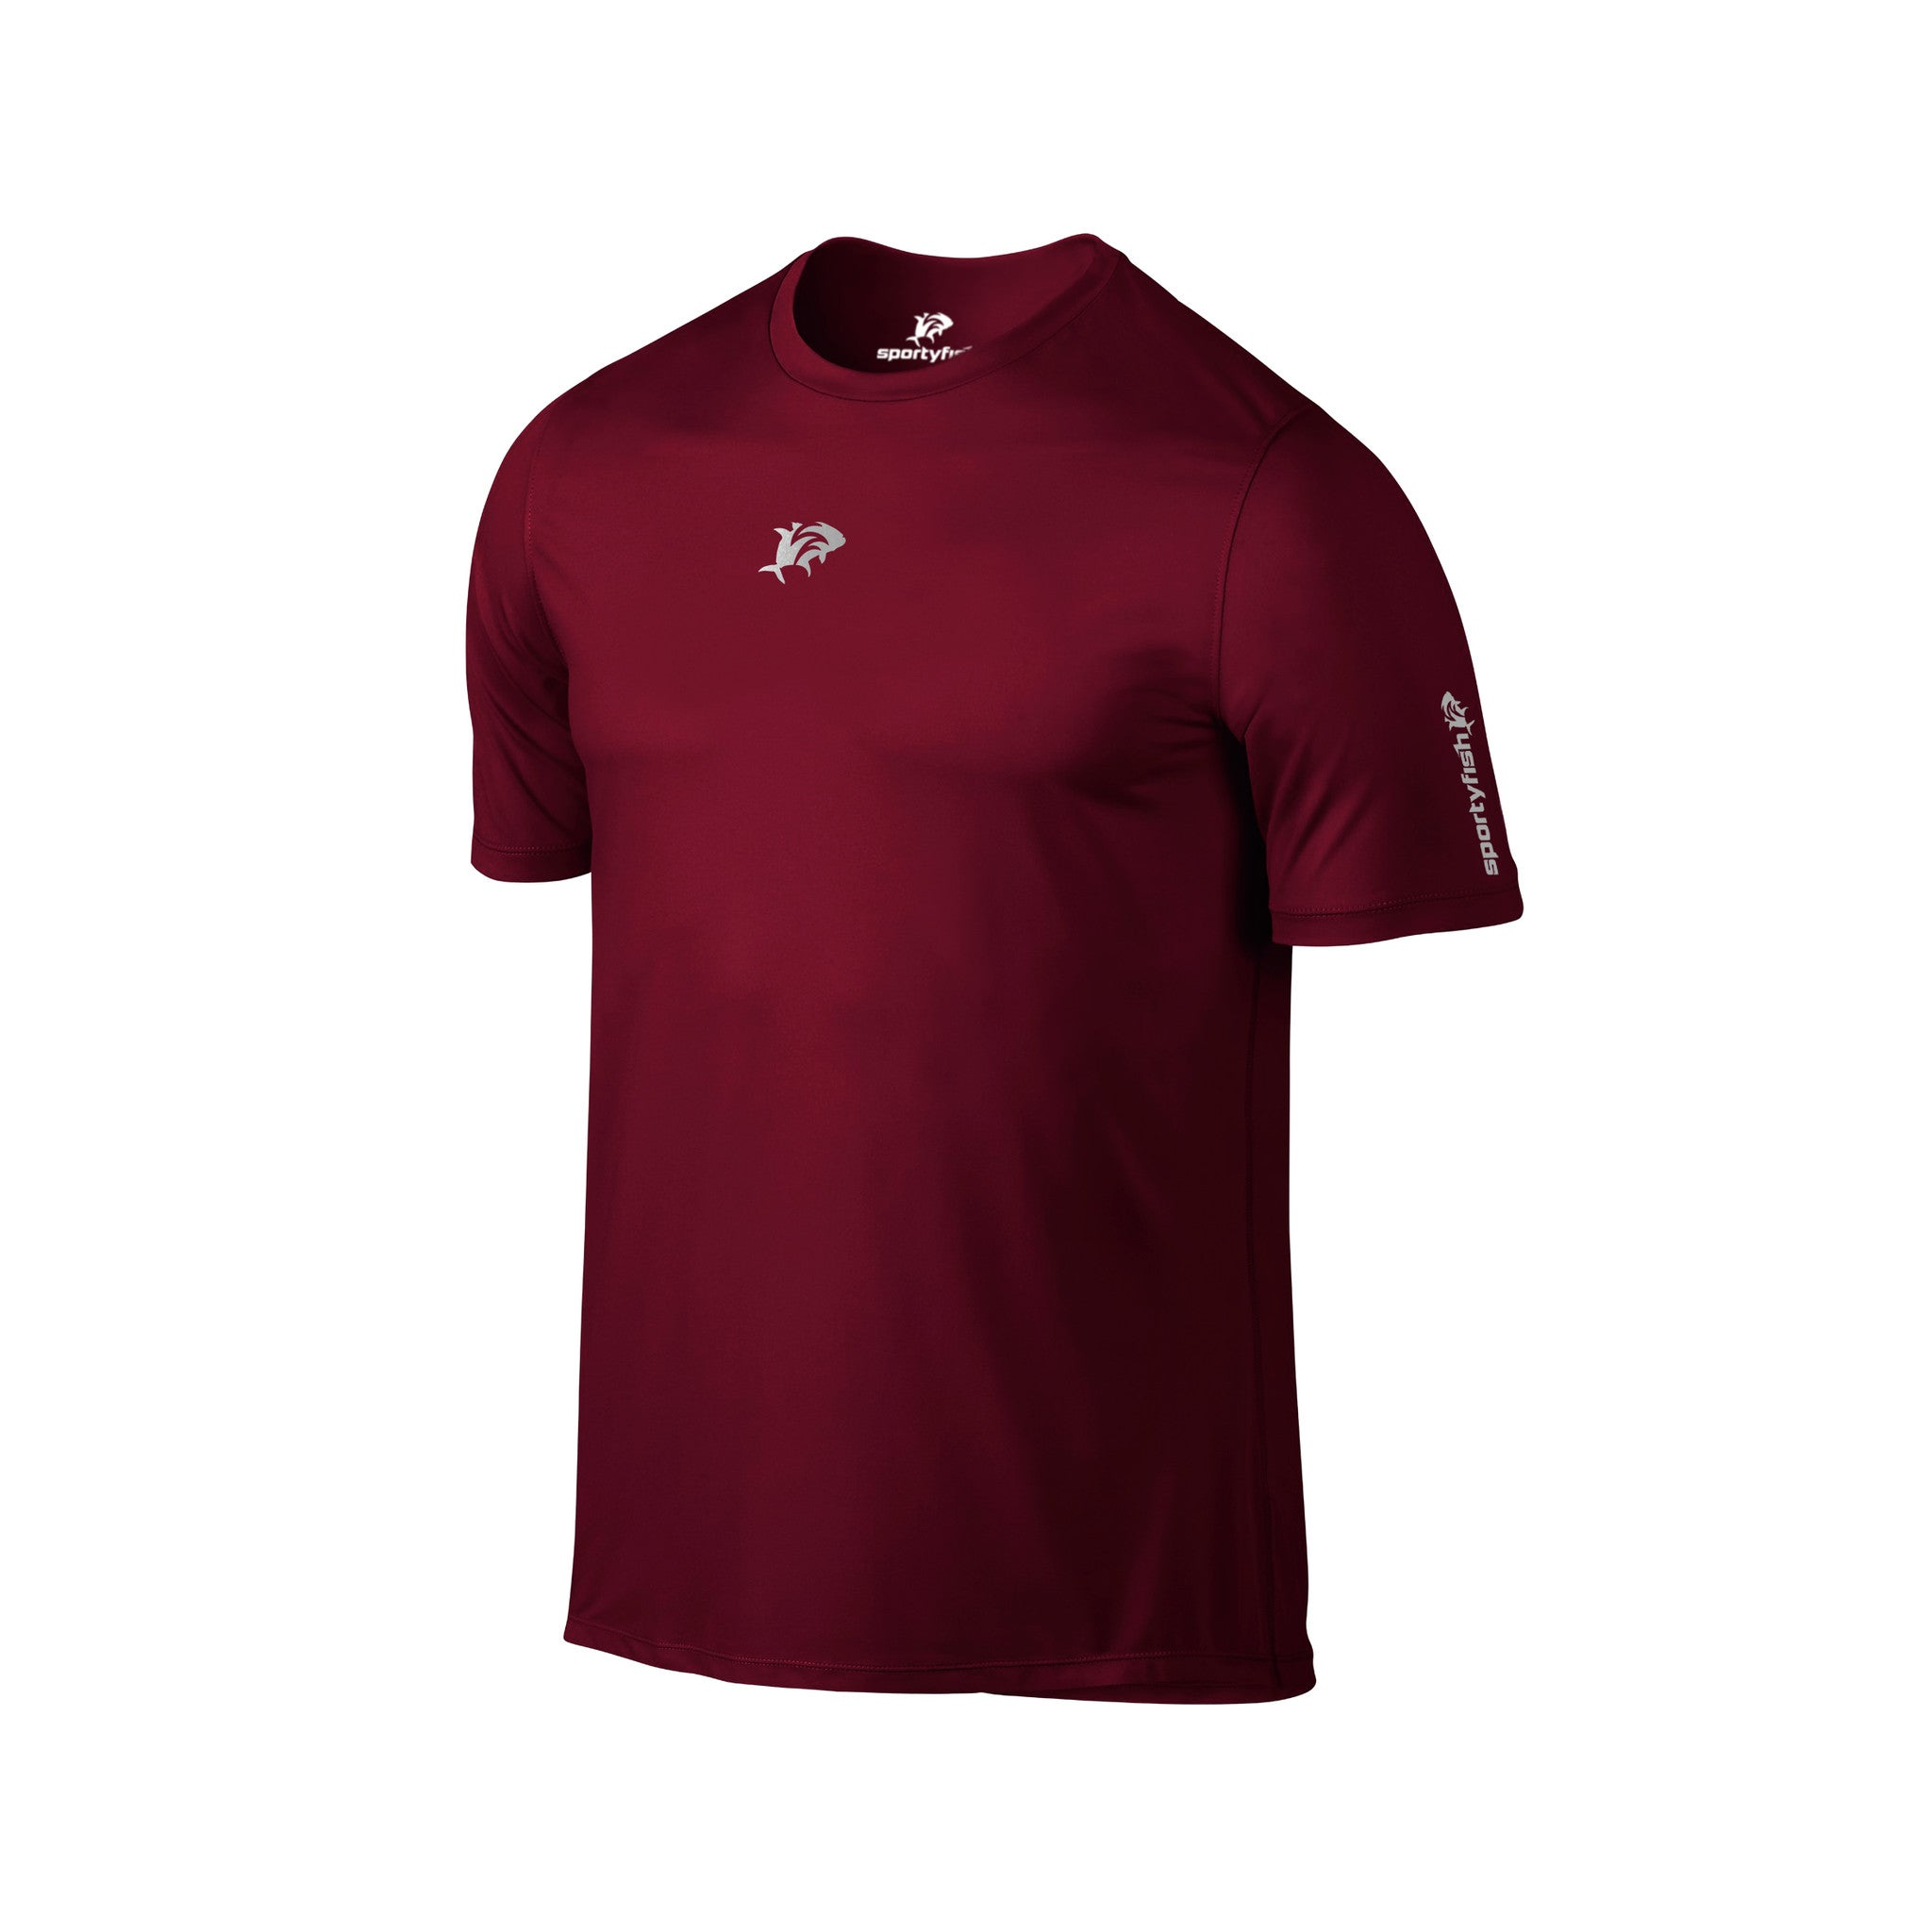 SportyFish Silhouette Series Silver print Maroon T-shirt: Jig Masters front view